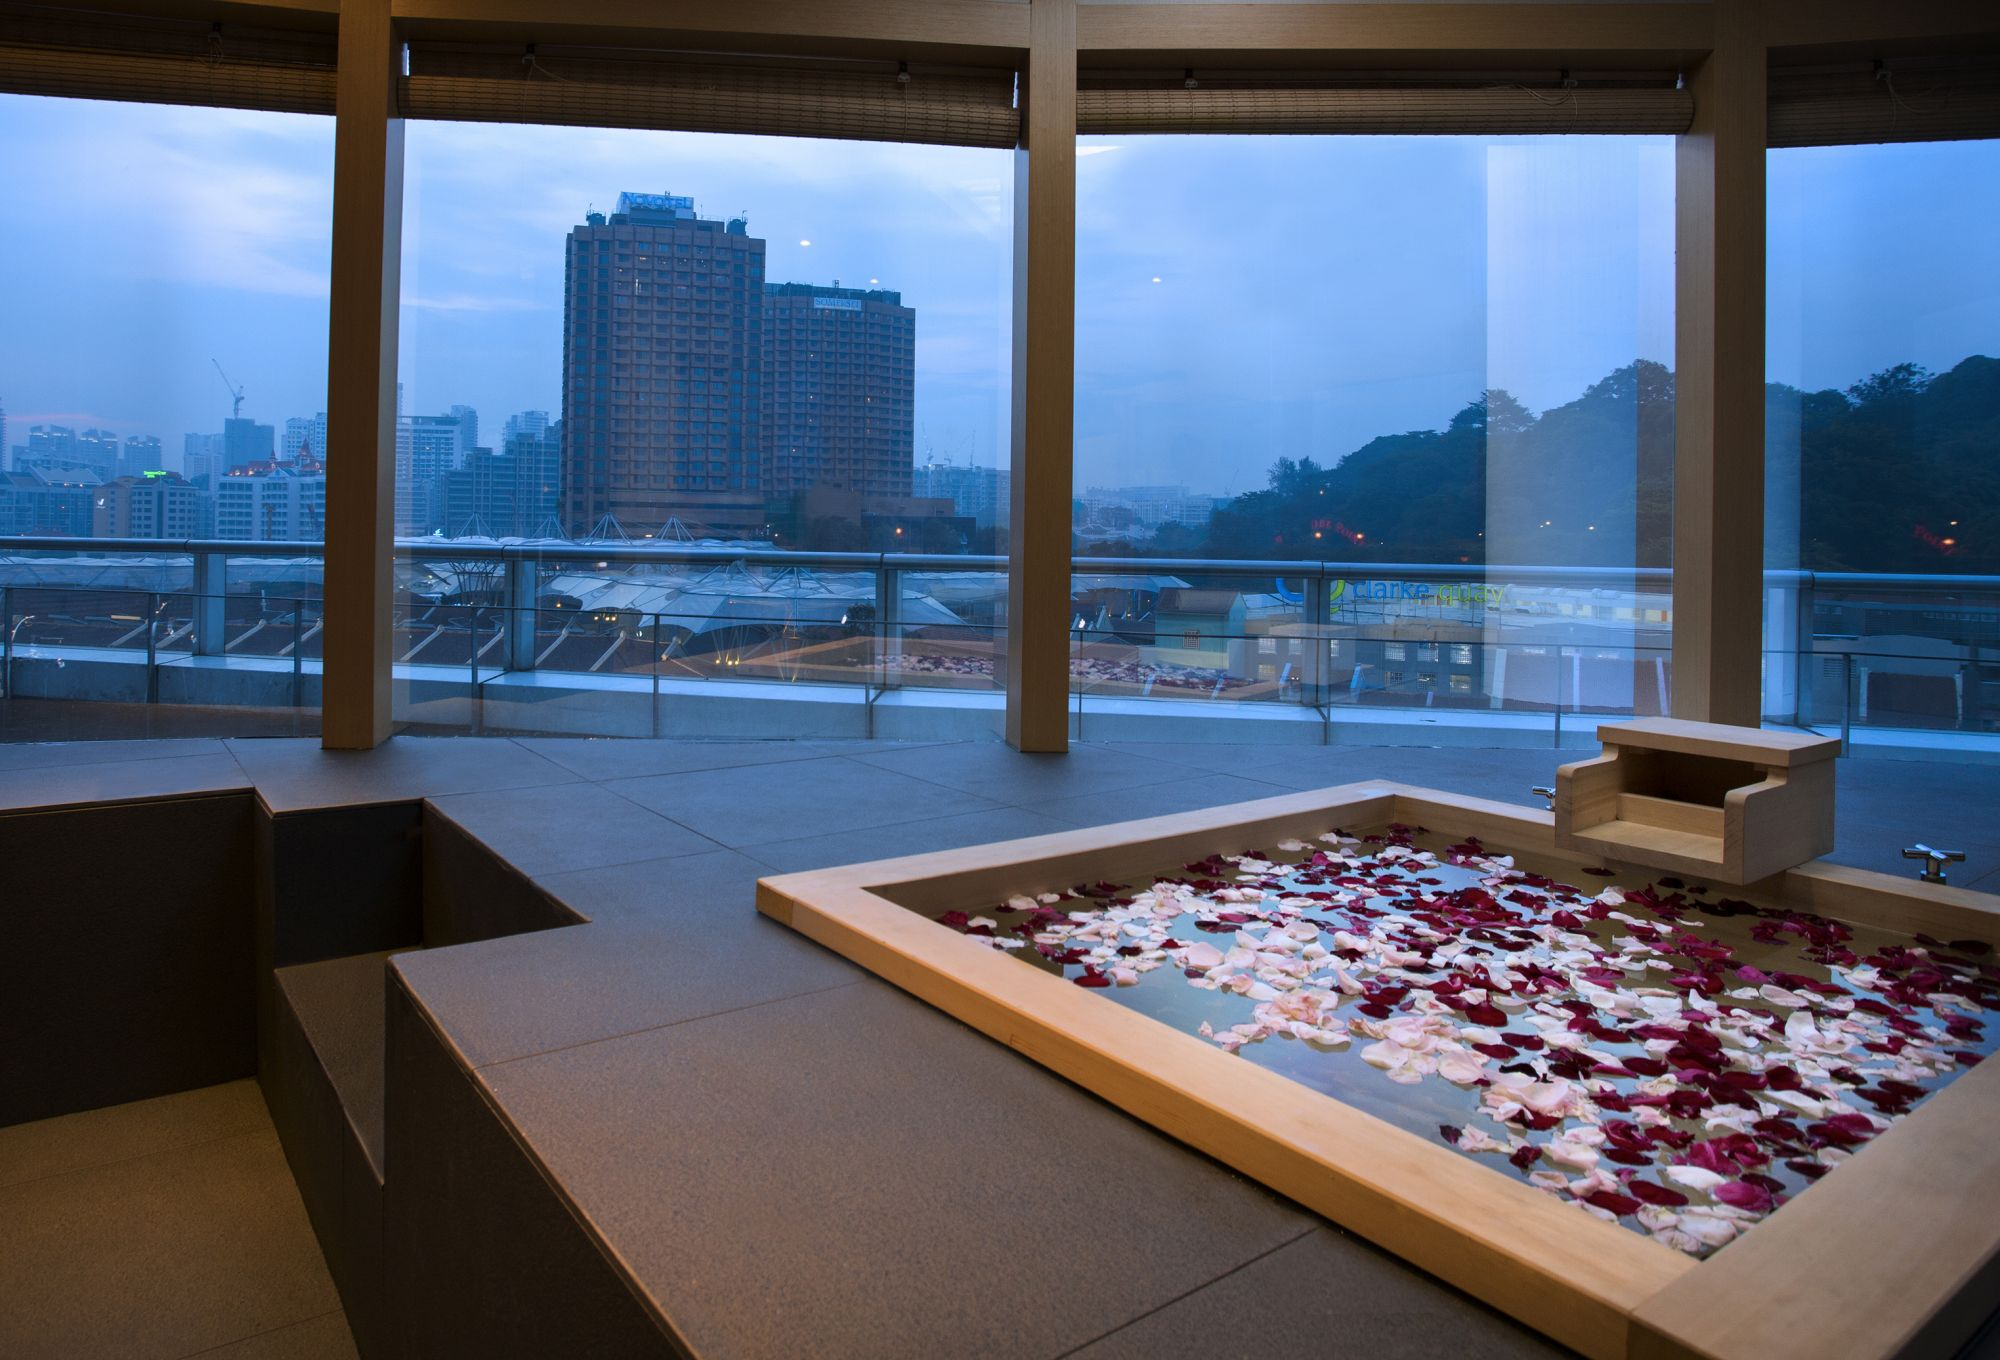 Why A Mid-Day Onsen Dip Is A Good Idea